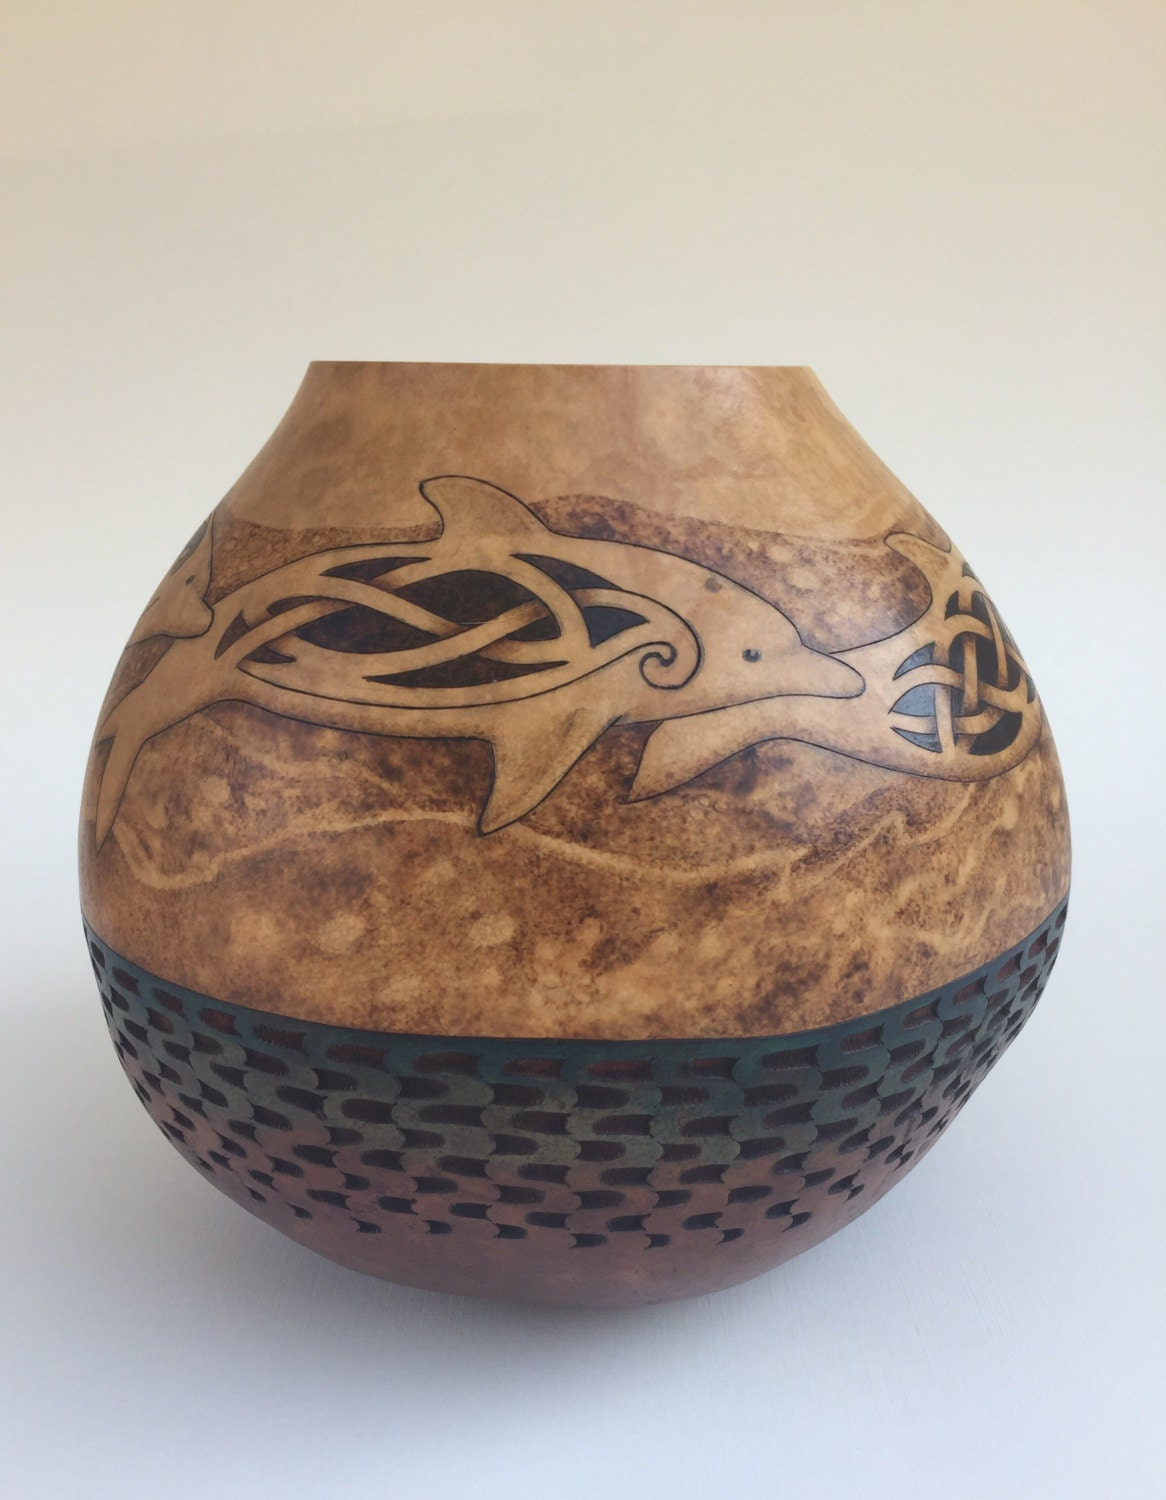 Dolphins pyrography wood burned carved gourd vase by